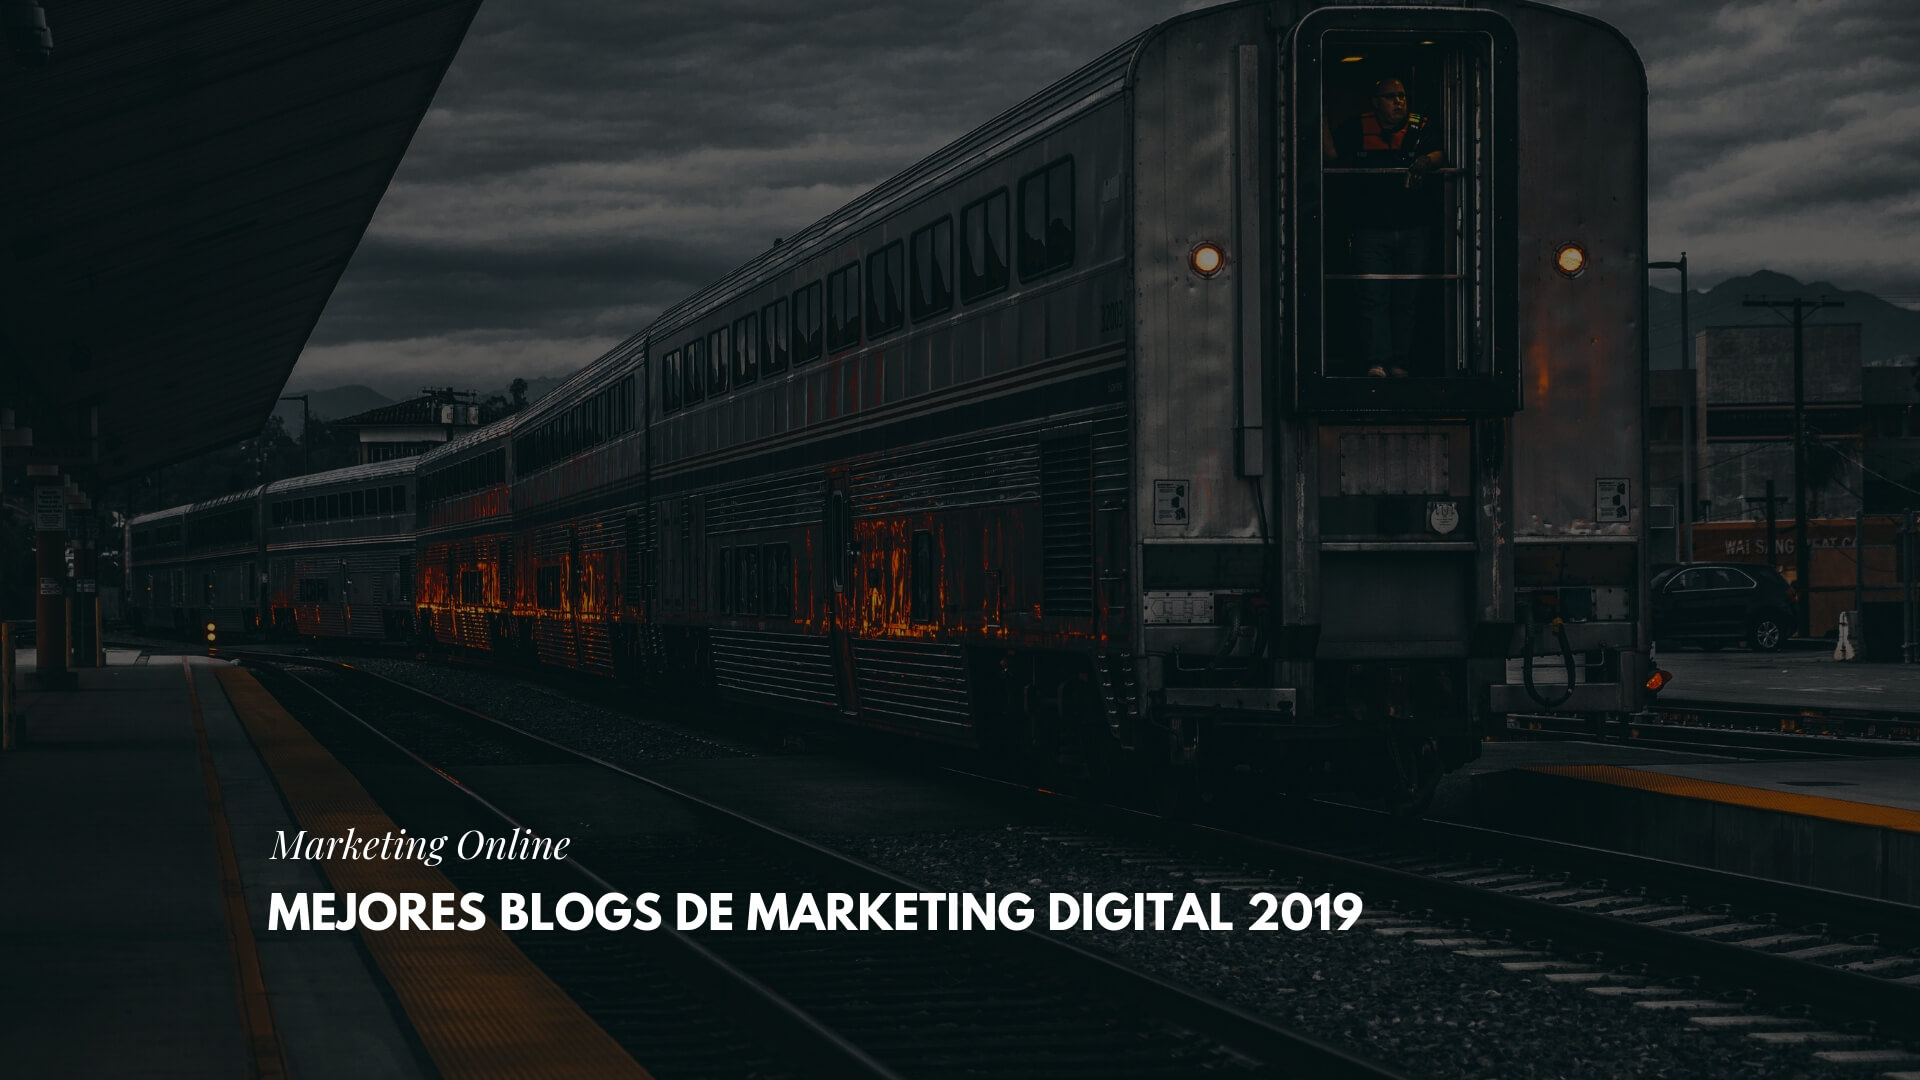 Los mejores Blogs de Marketing Digital 2019 para seguir